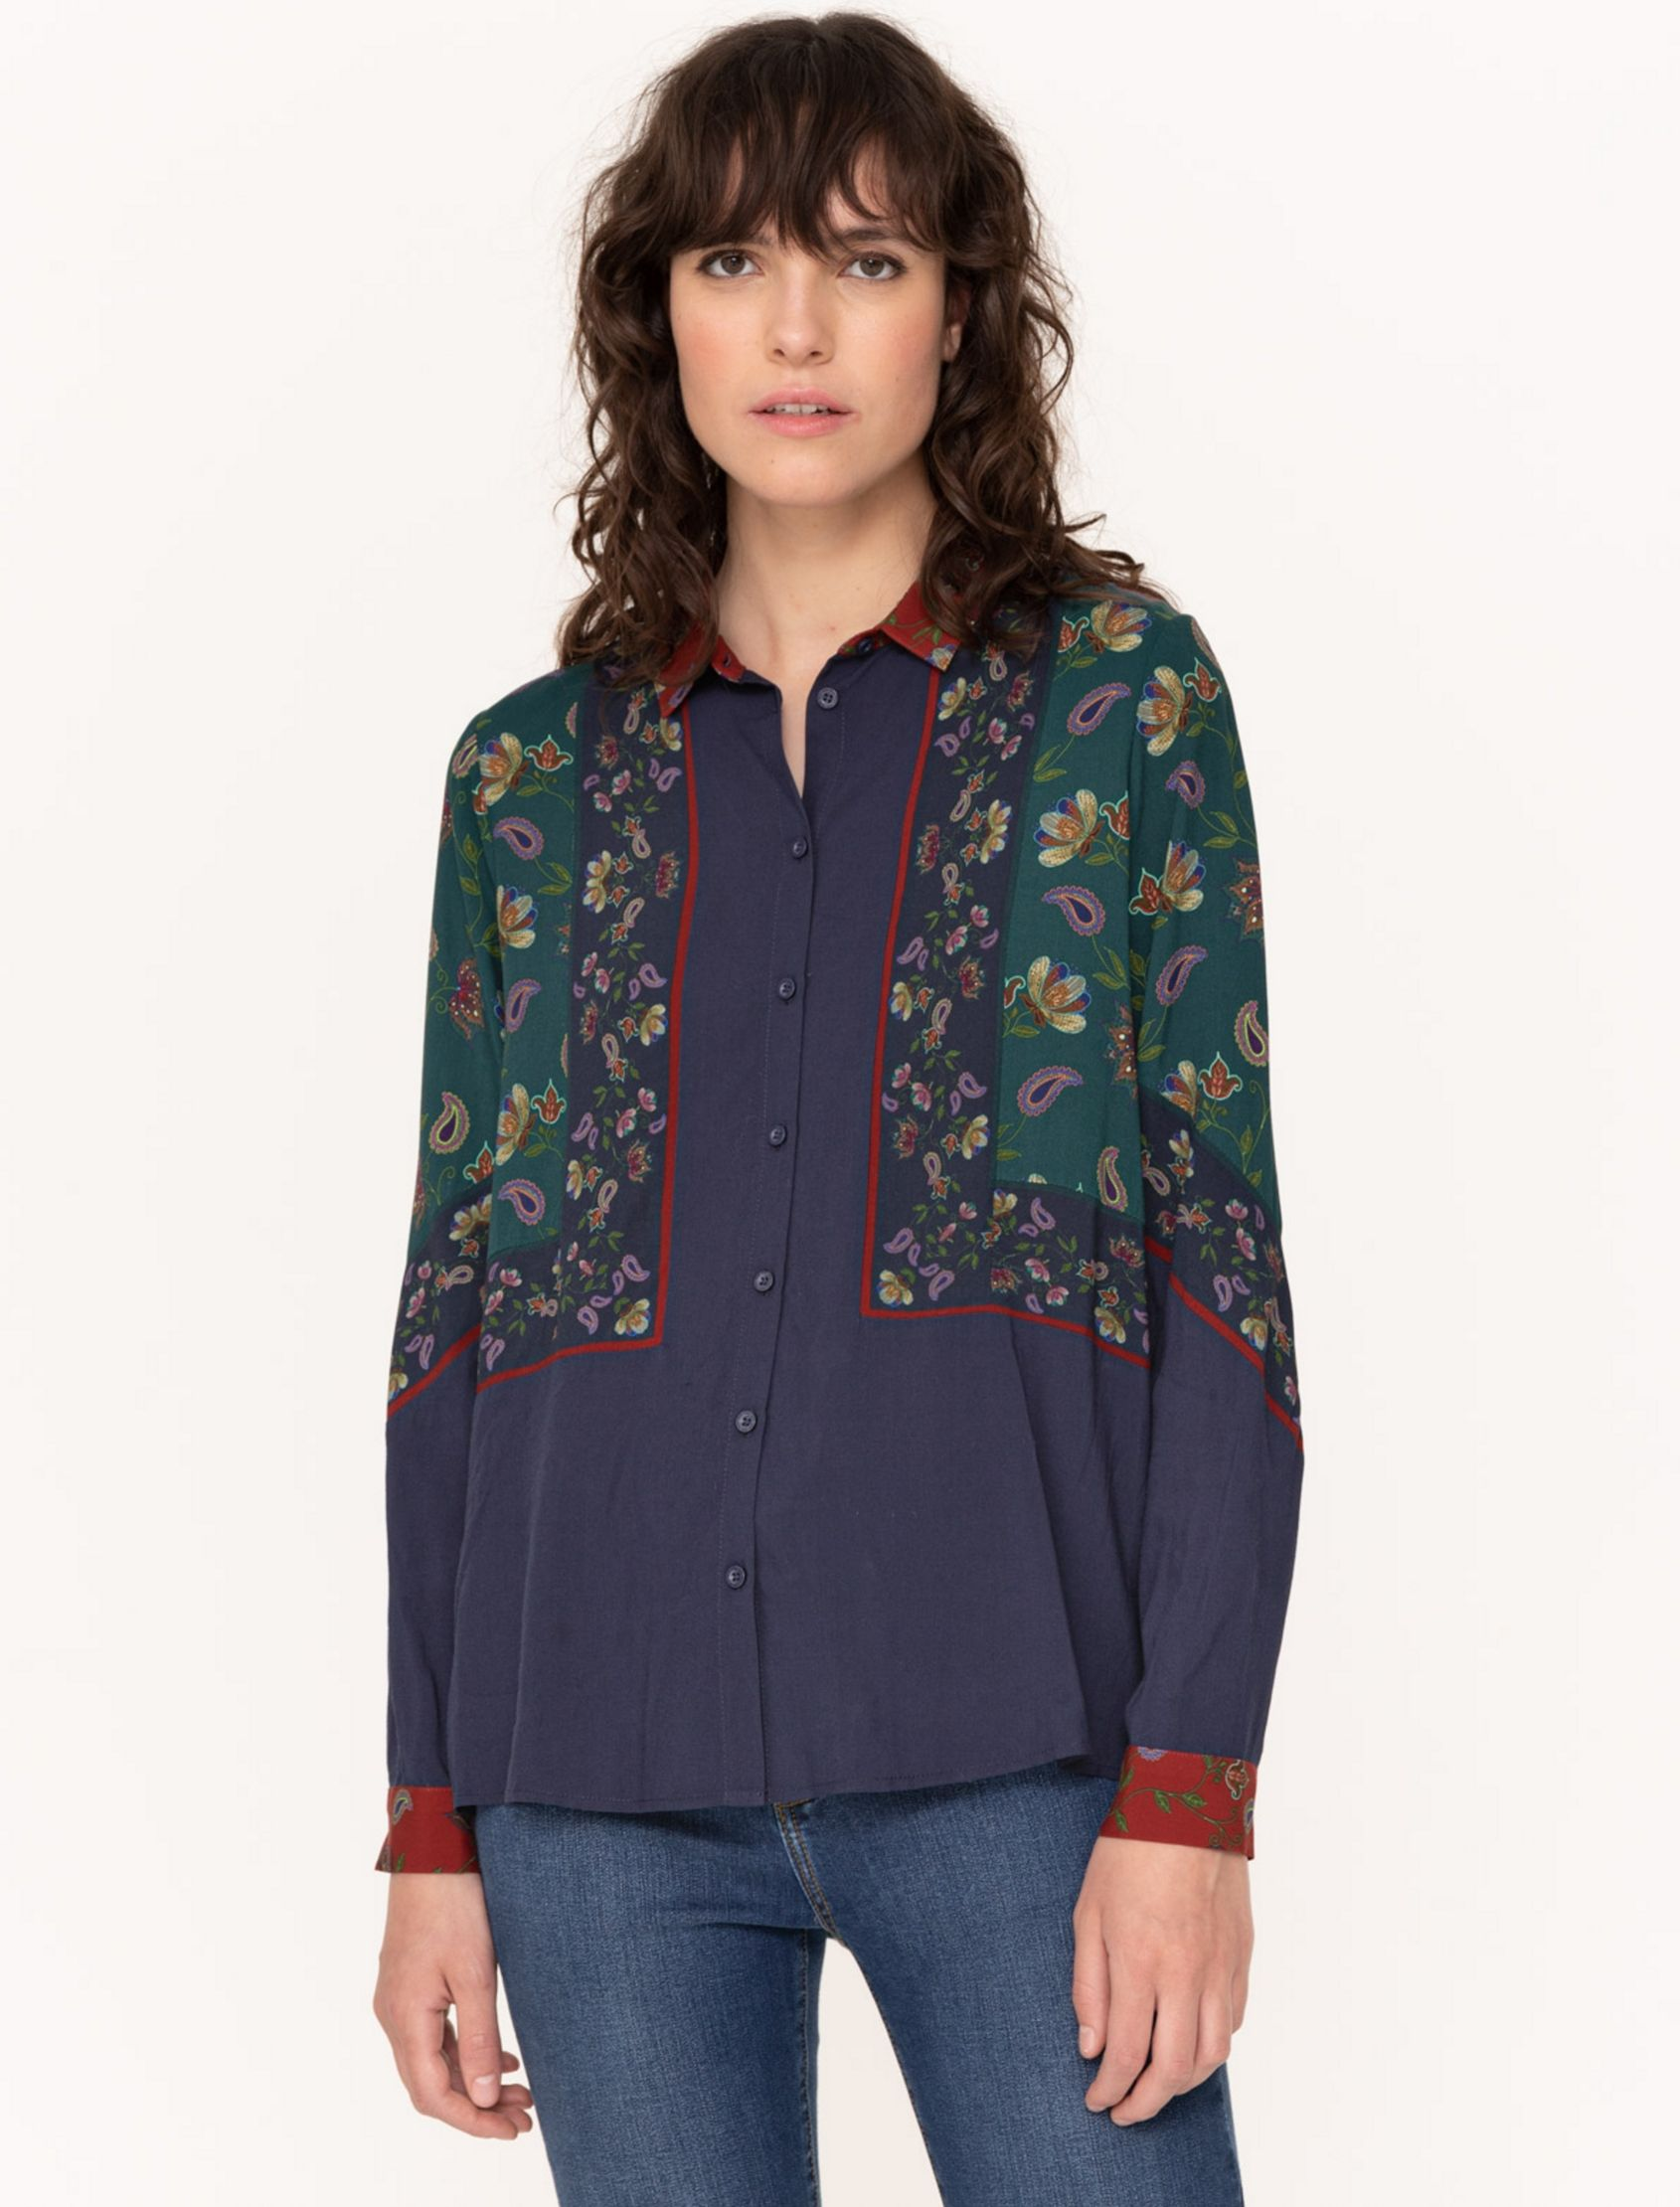 camisa_patchwork_pasley_yerse_SloaneSquare_01